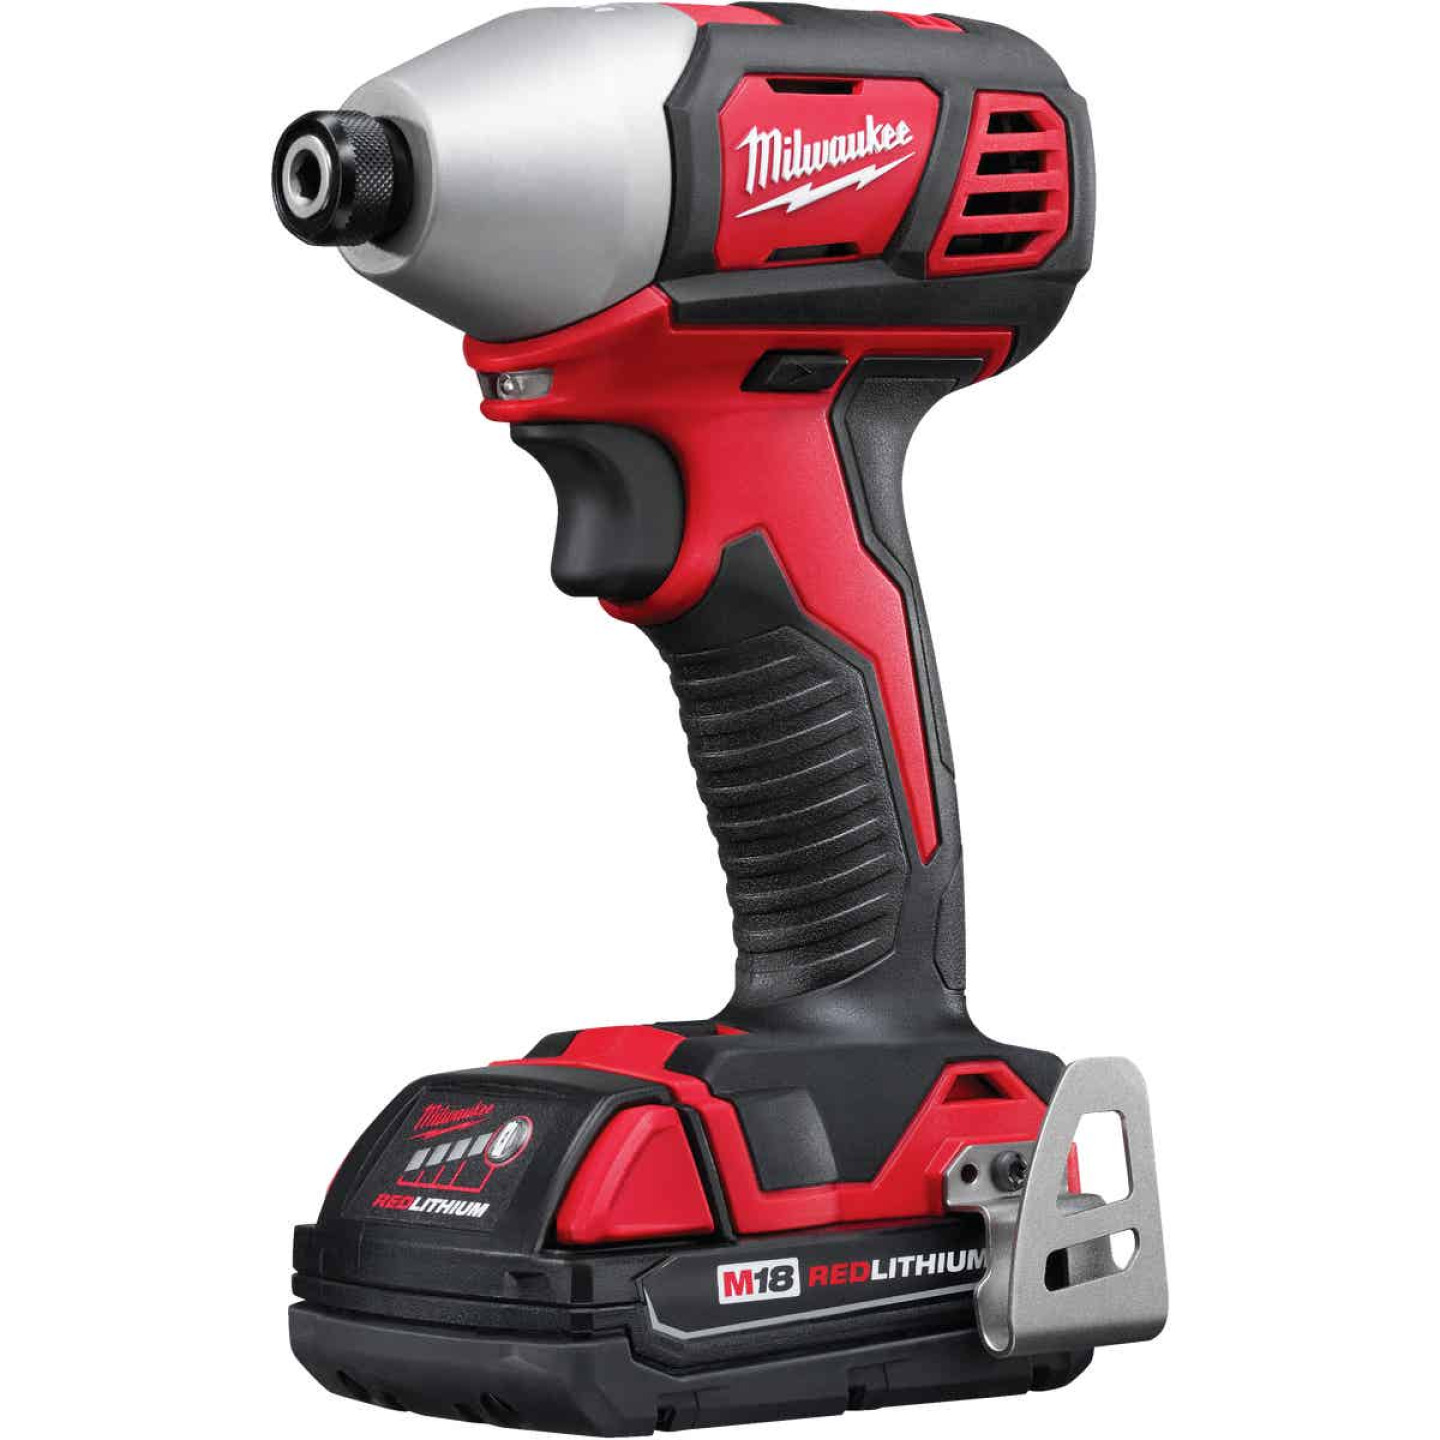 Milwaukee M18 18 Volt Lithium-Ion 2-Speed 1/4 In. Hex Cordless Impact Driver Kit (with 2 Compact Batteries) Image 1